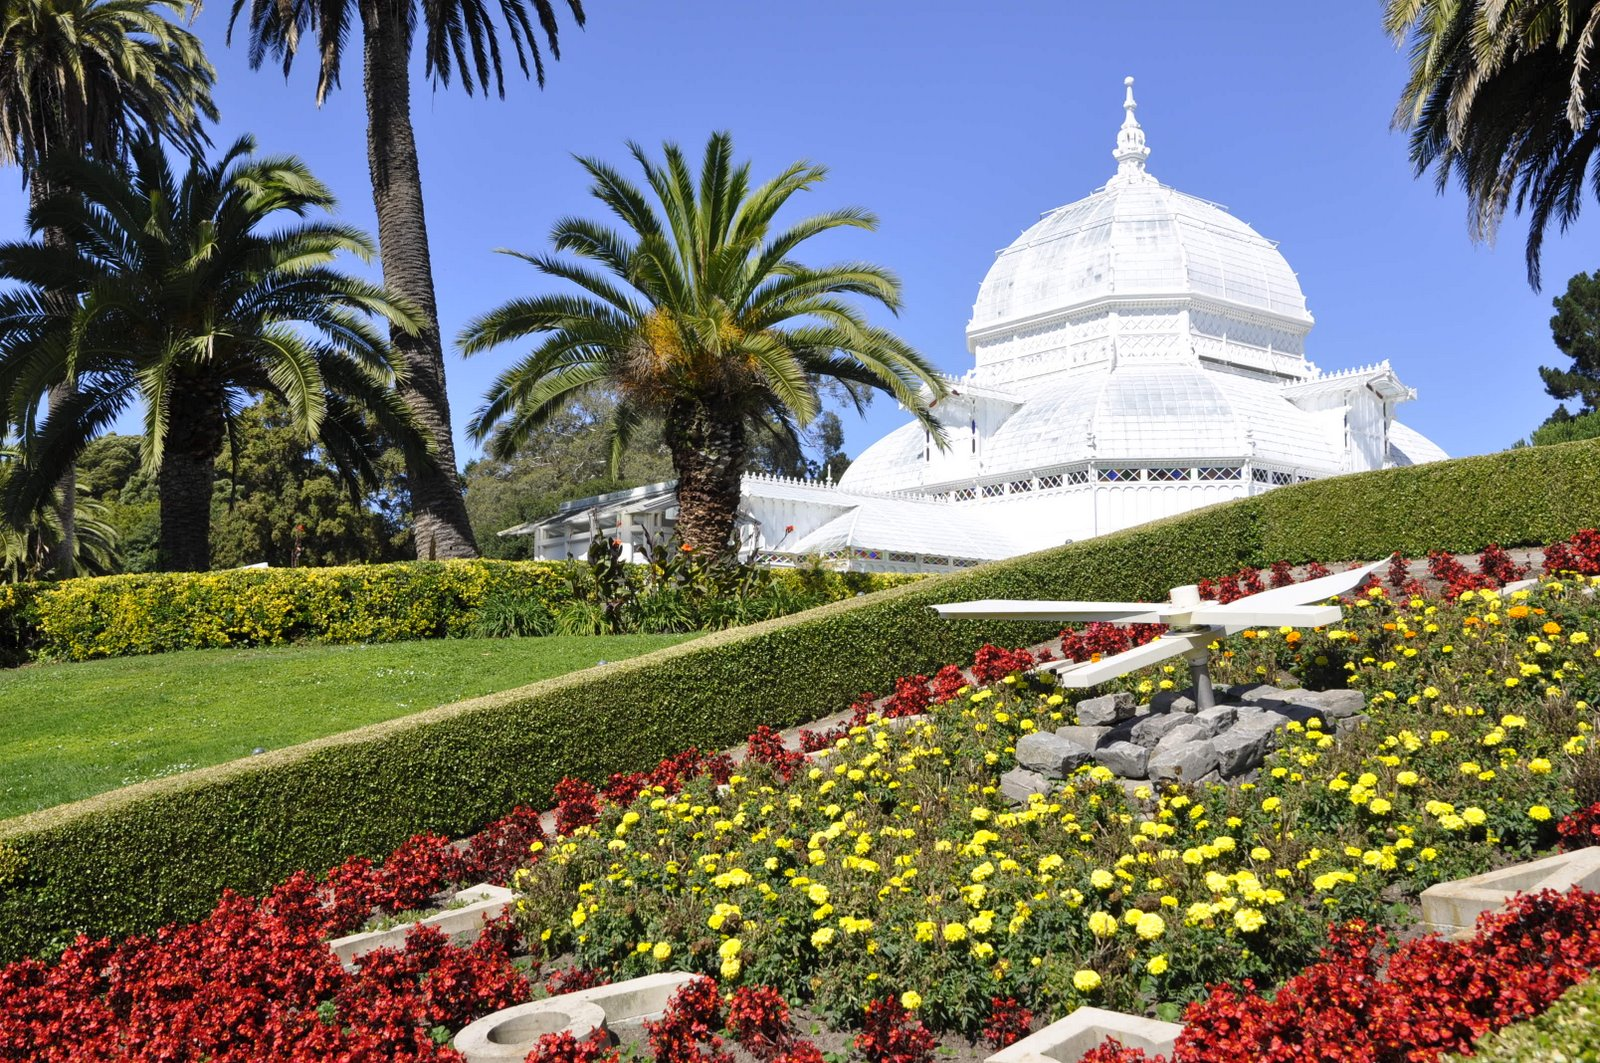 Conservatory Of Flowers Is A Greenhouse And Botanical Garden That Houses  Rare And Tropical Plants.